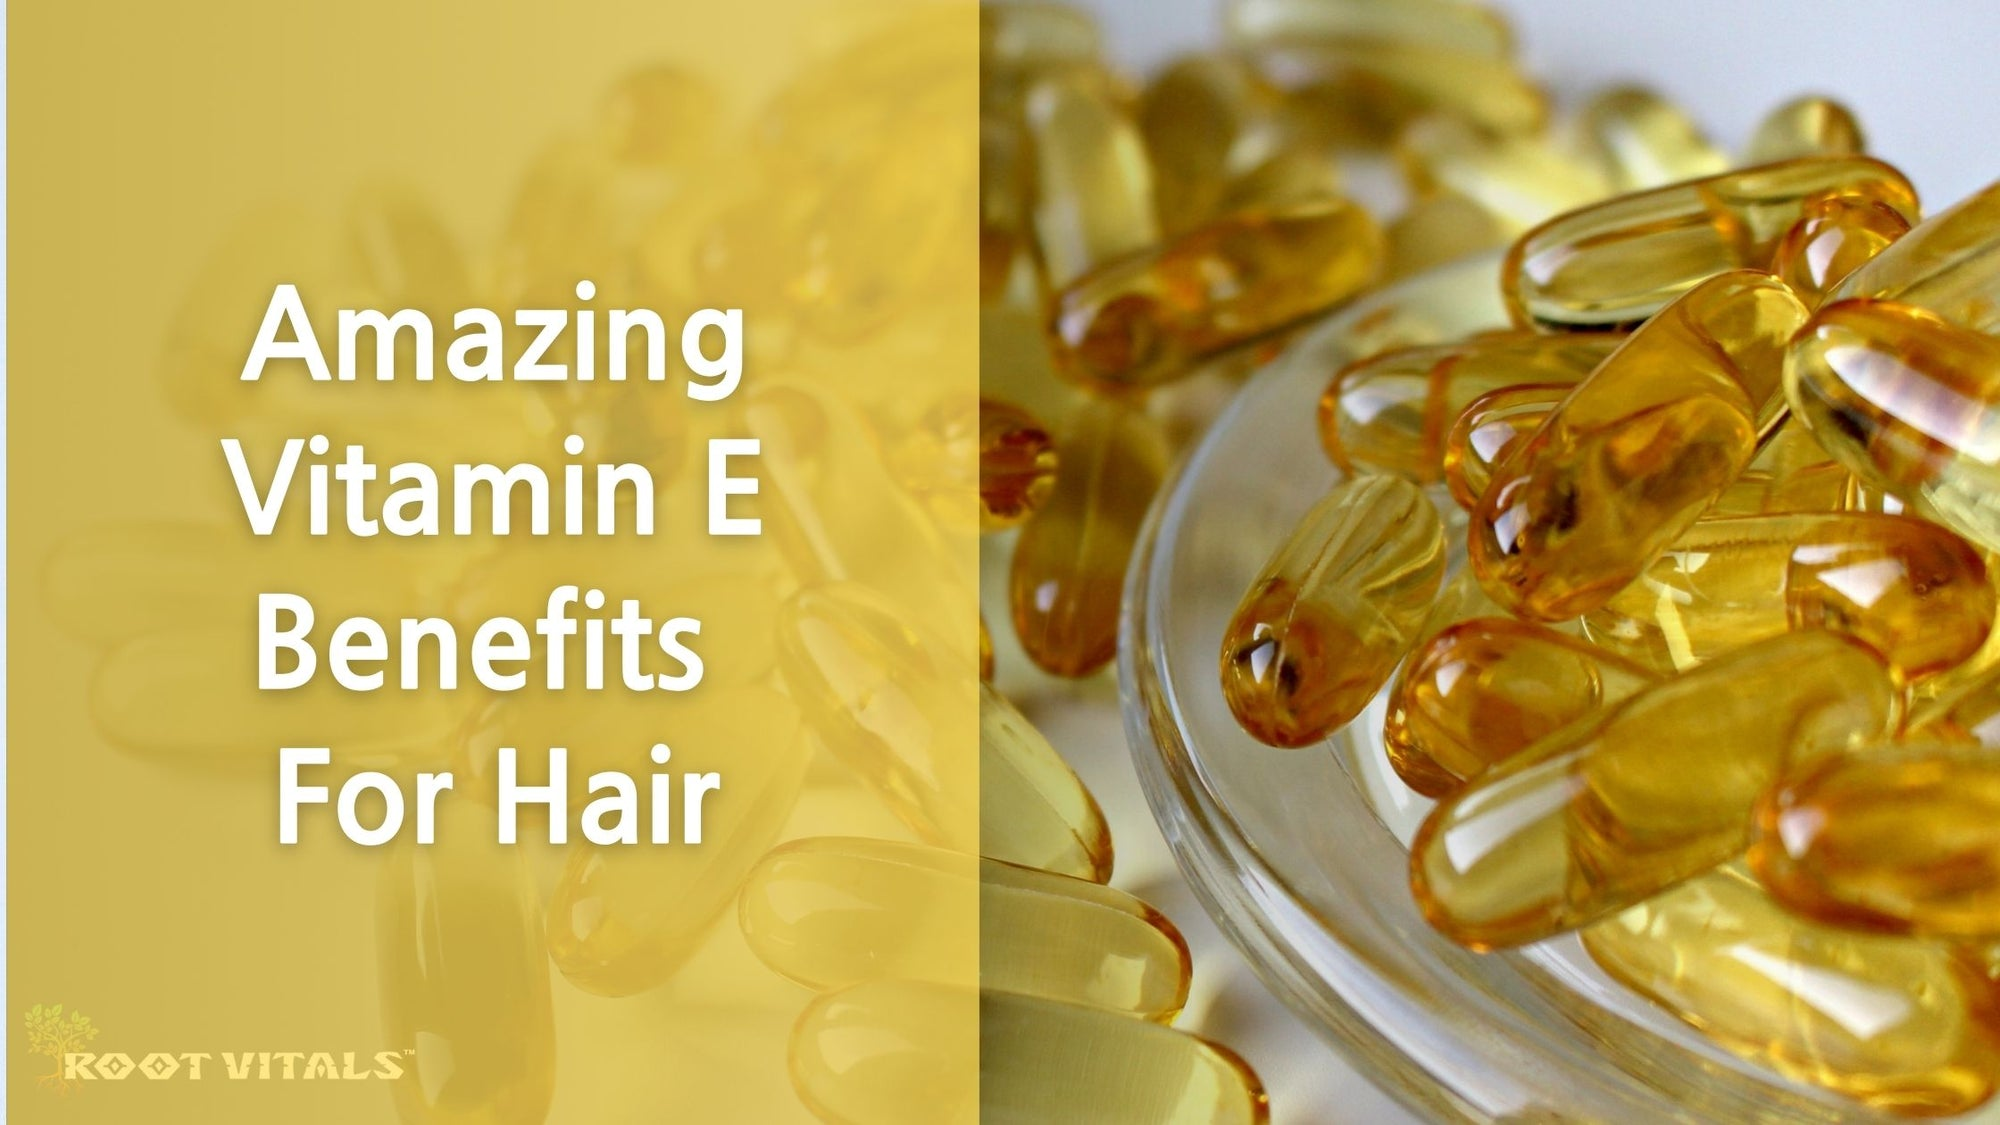 5 Amazing Vitamin E Benefits For Hair